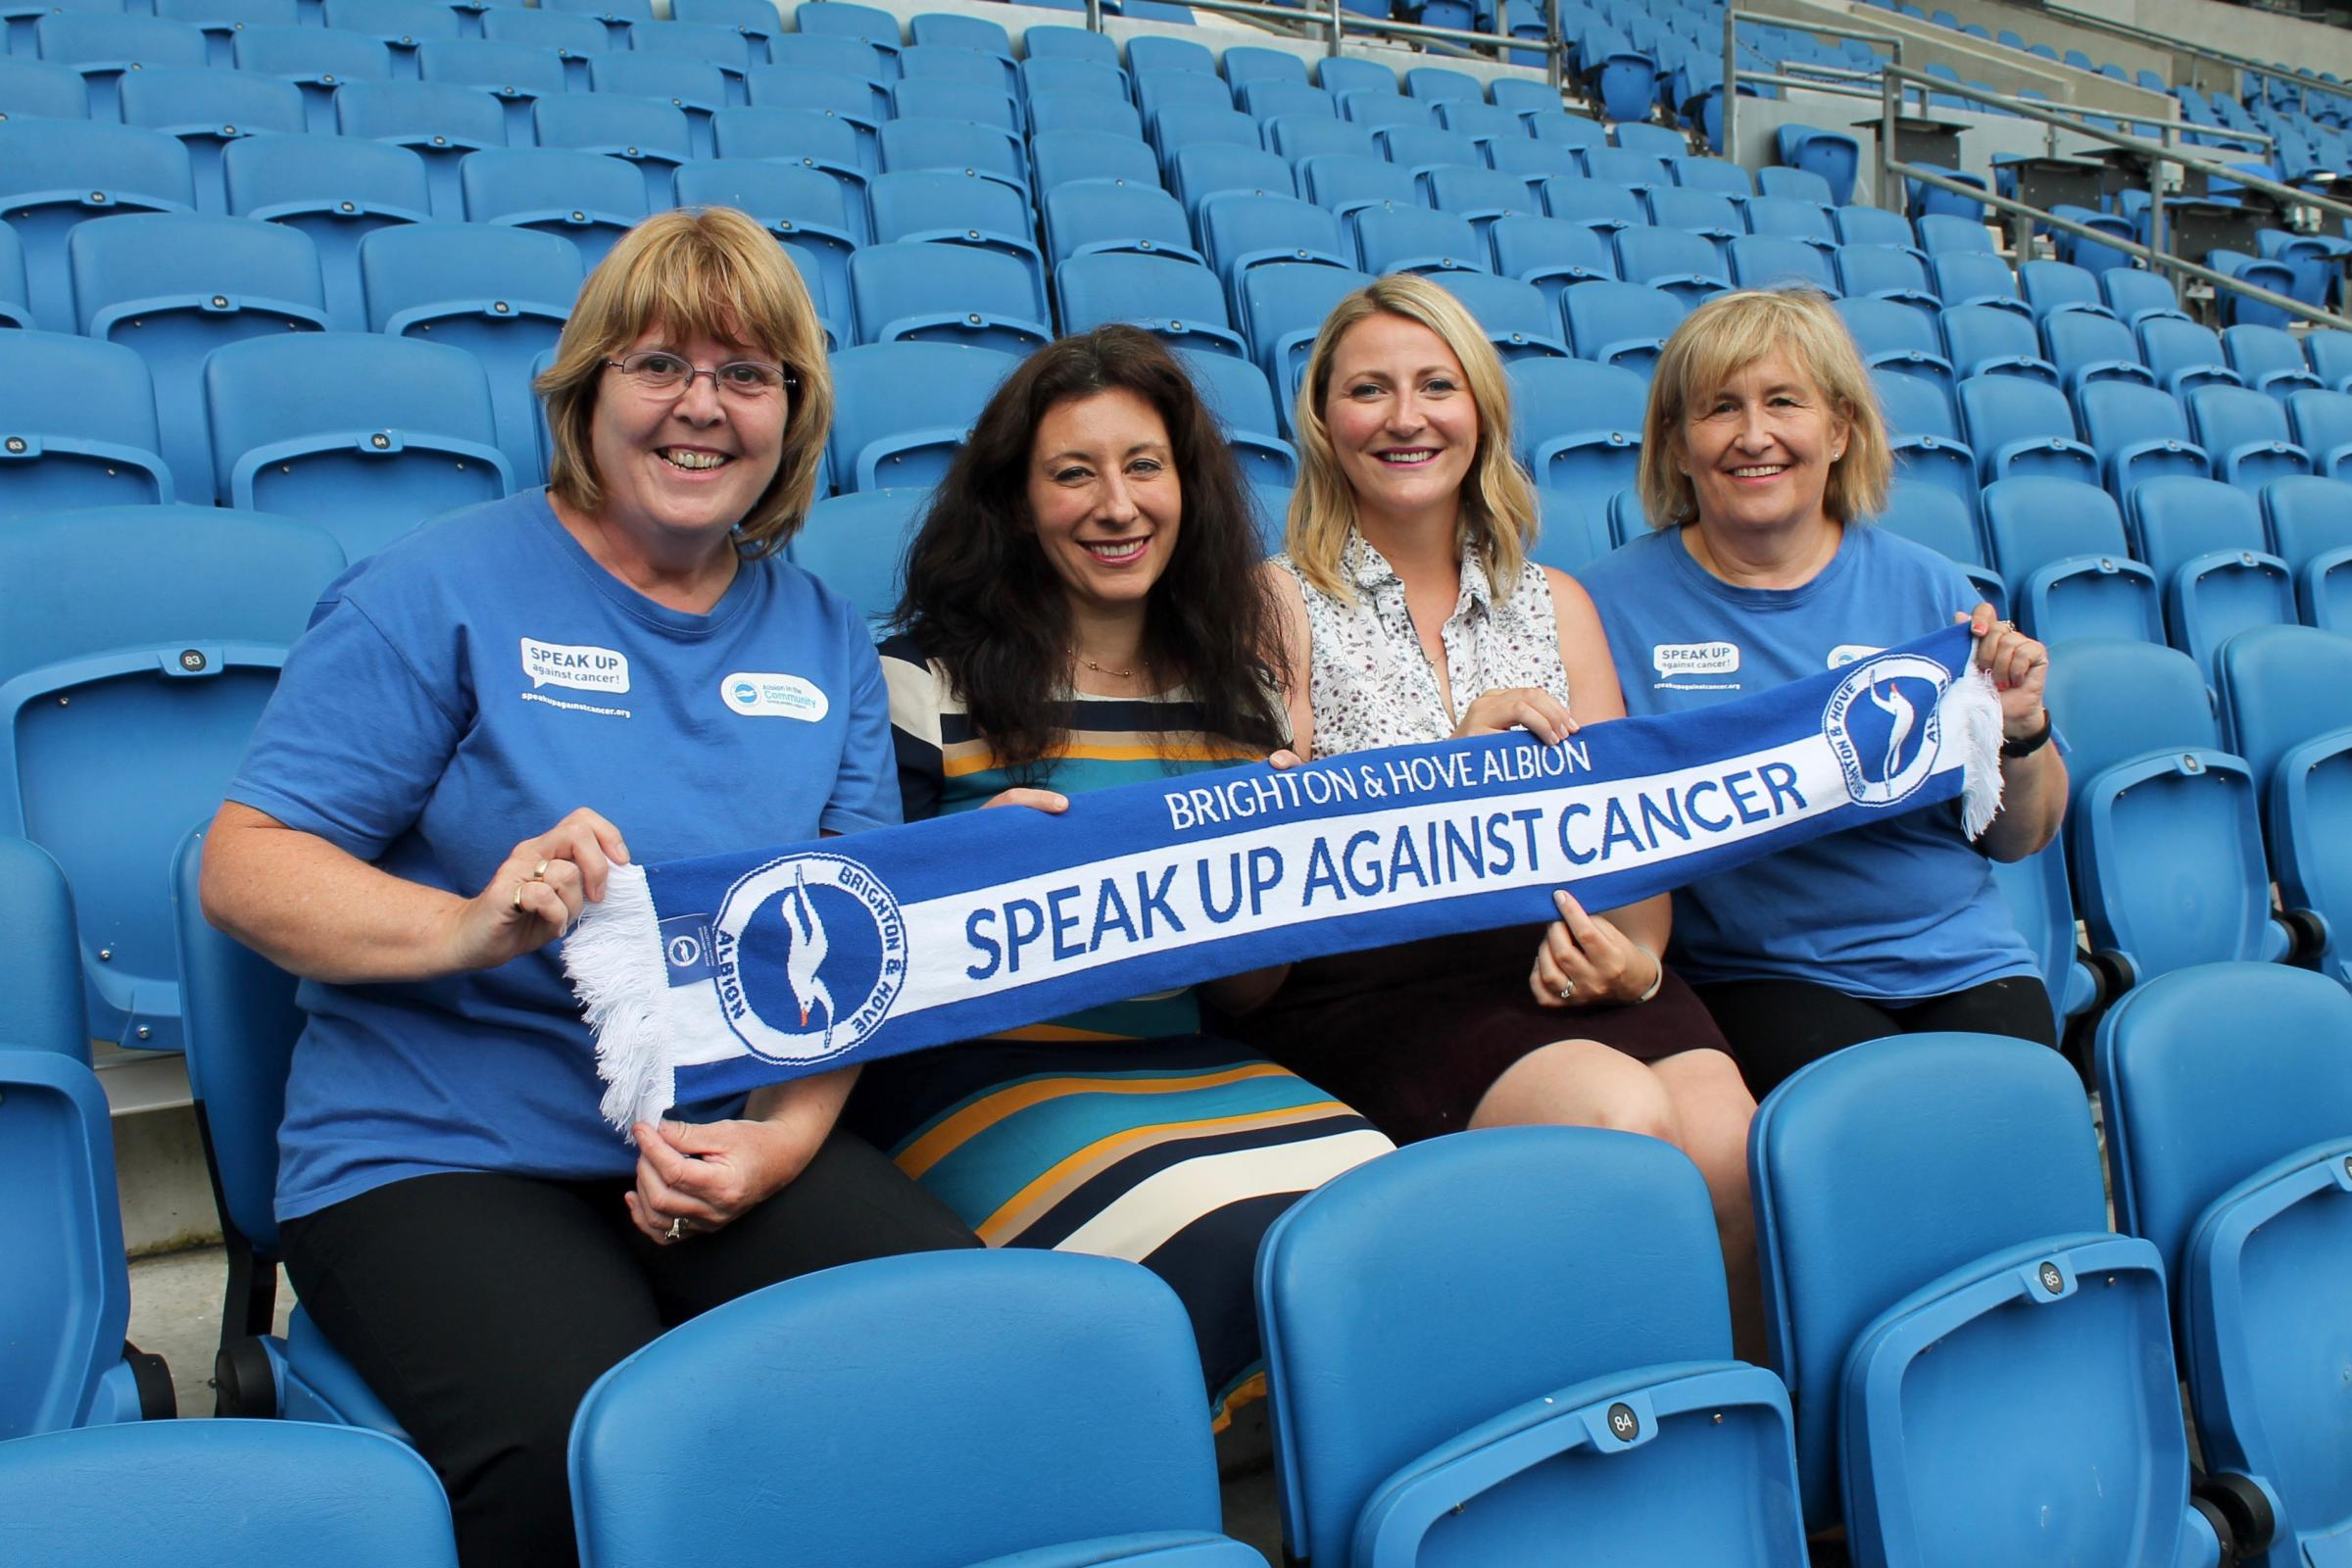 Albion charity's warning on skin cancer